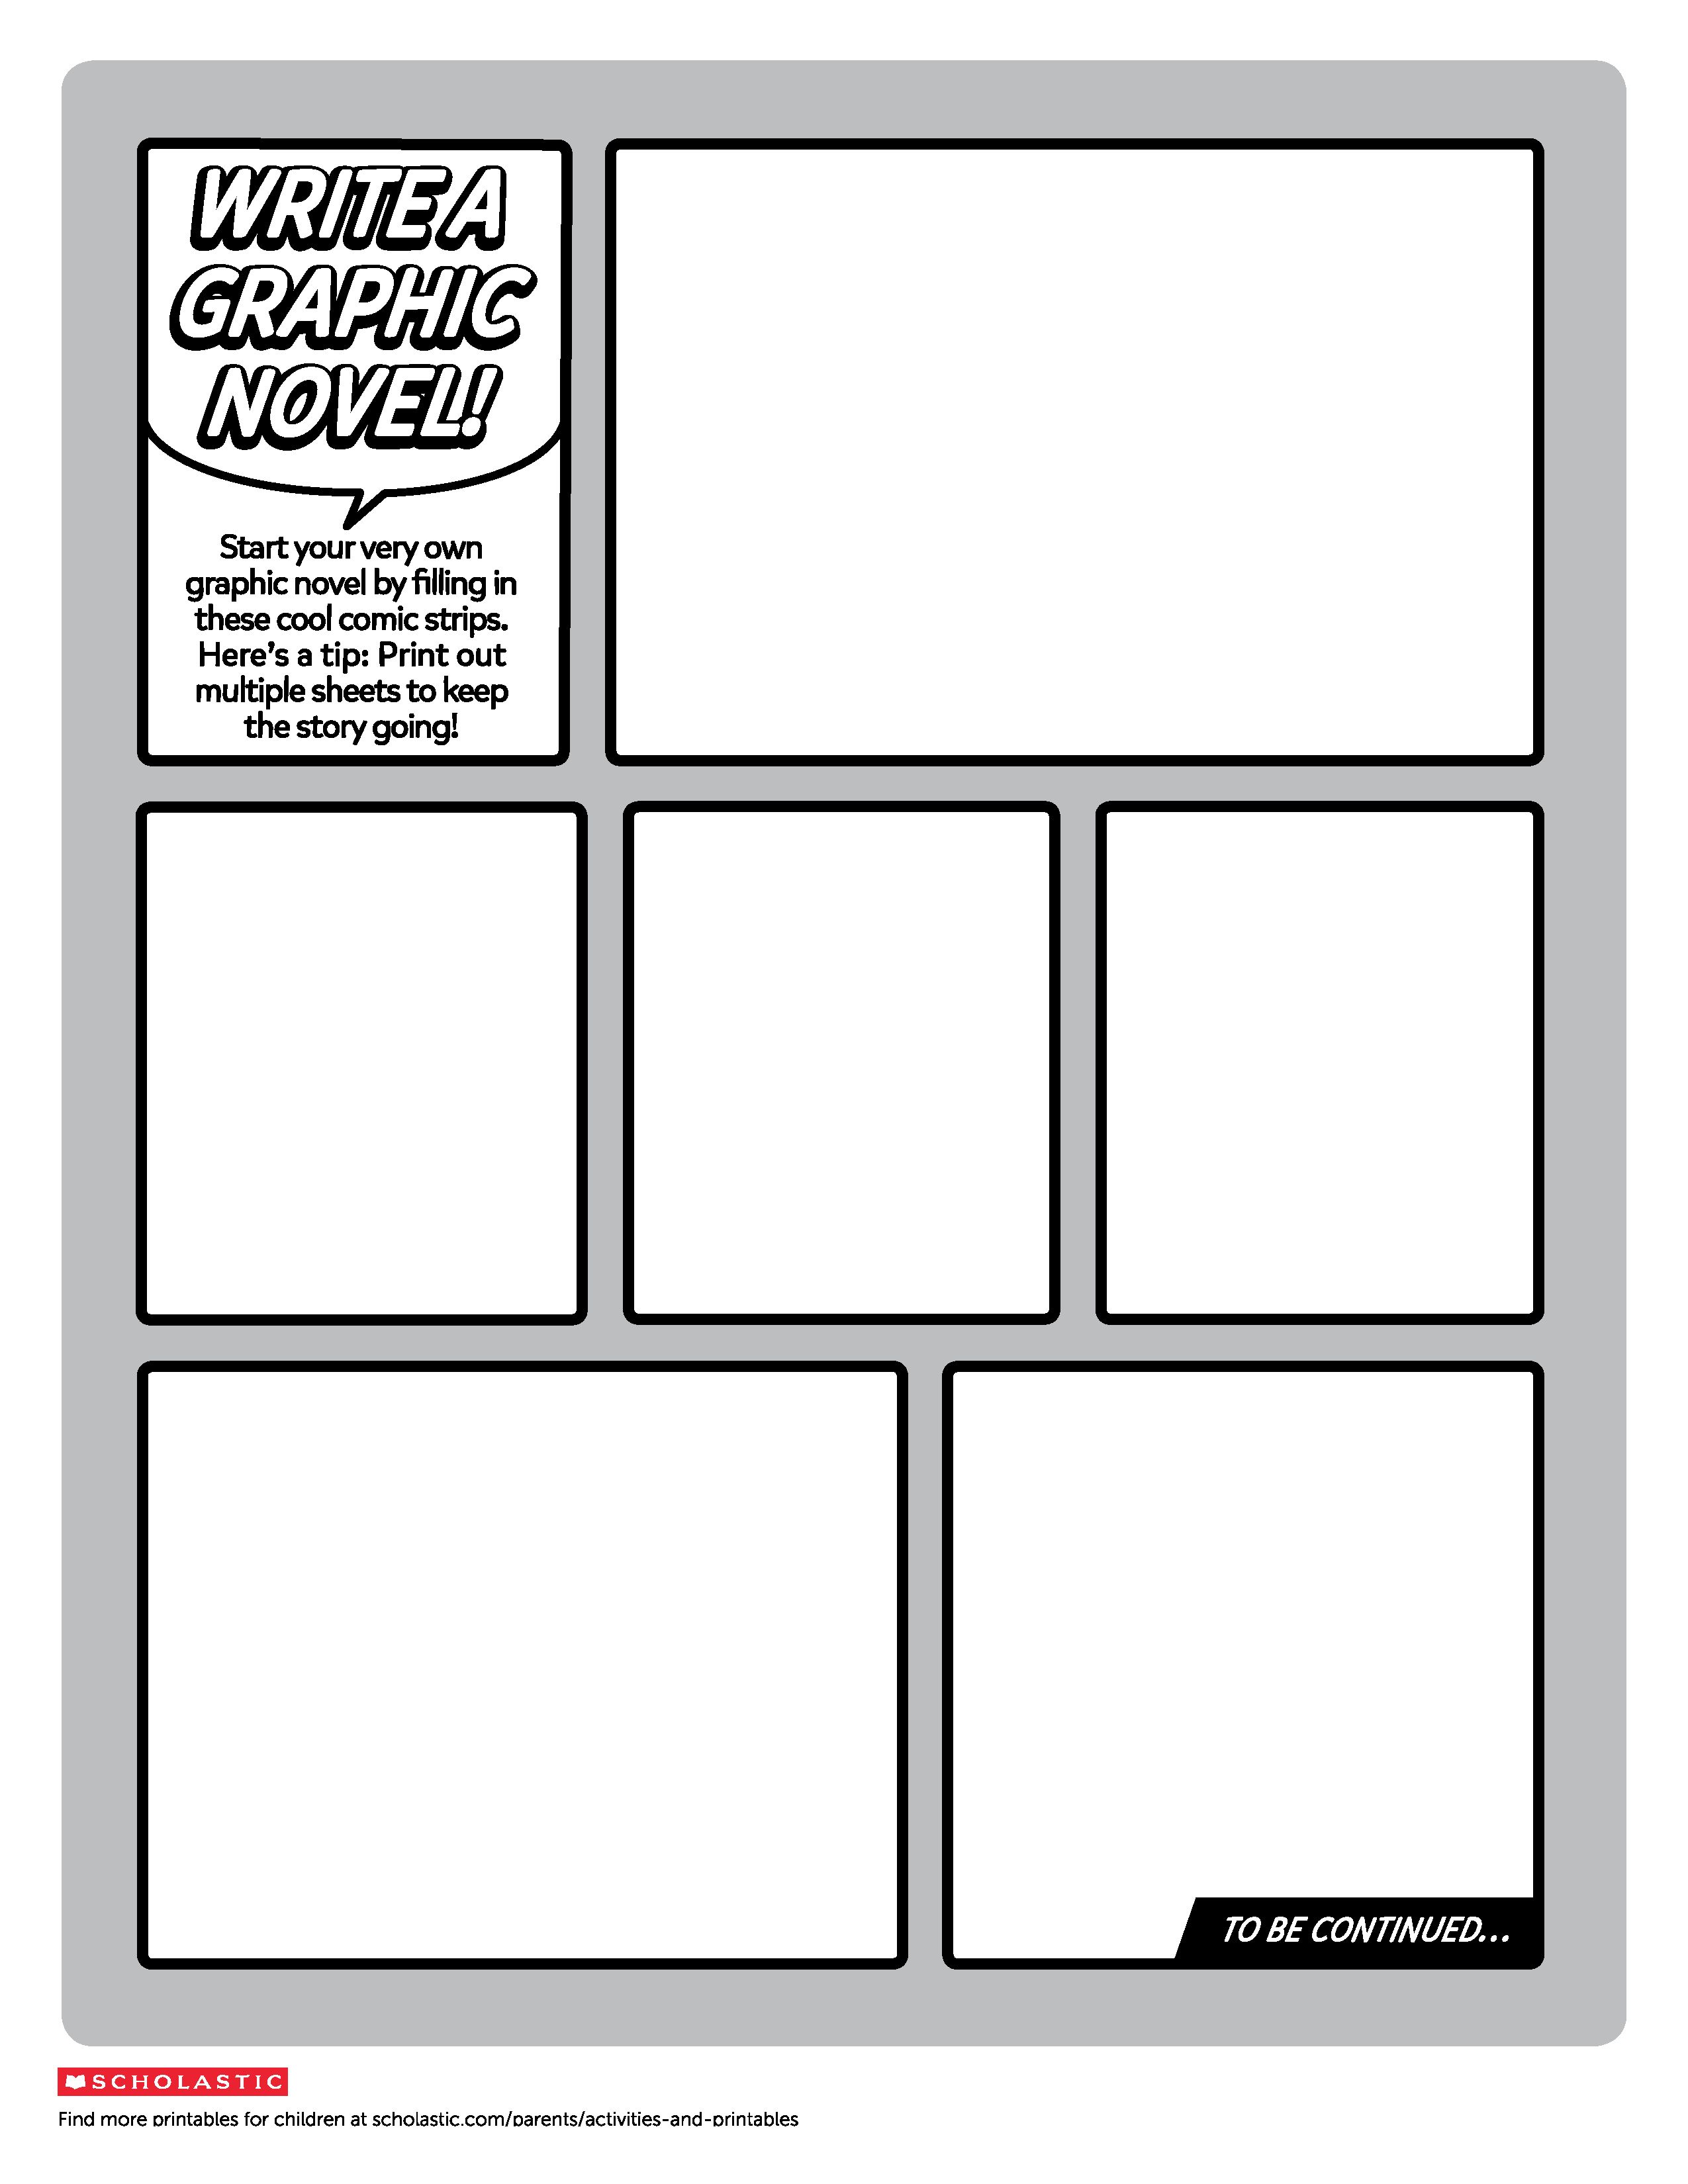 Create Your Own Graphic Novel Template